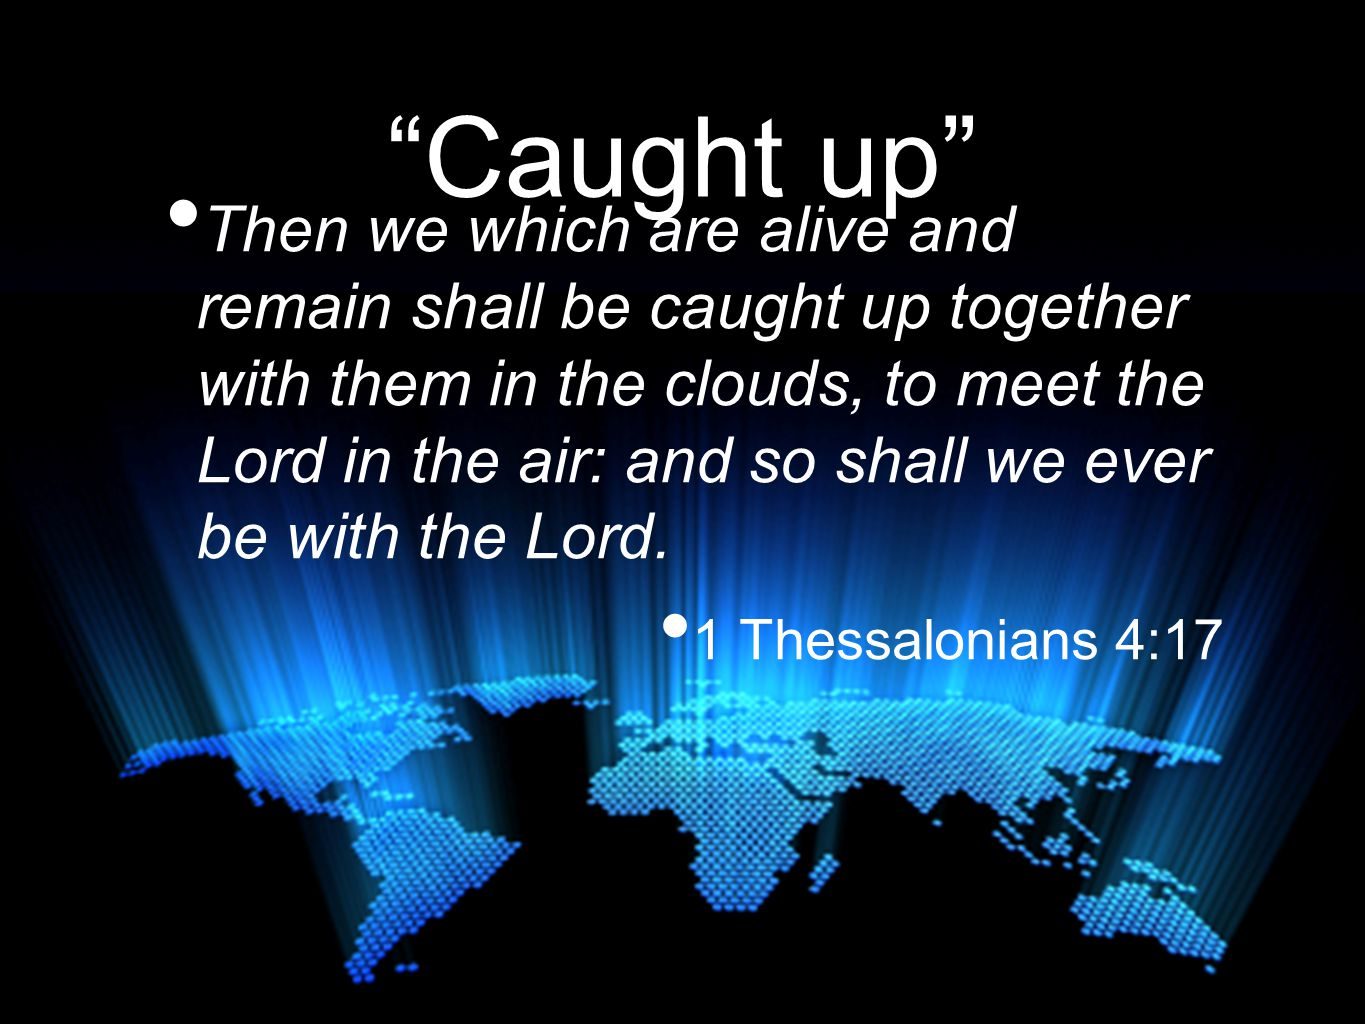 Caught up Then we which are alive and remain shall be caught up together with them in the clouds, to meet the Lord in the air: and so shall we ever be with the Lord.